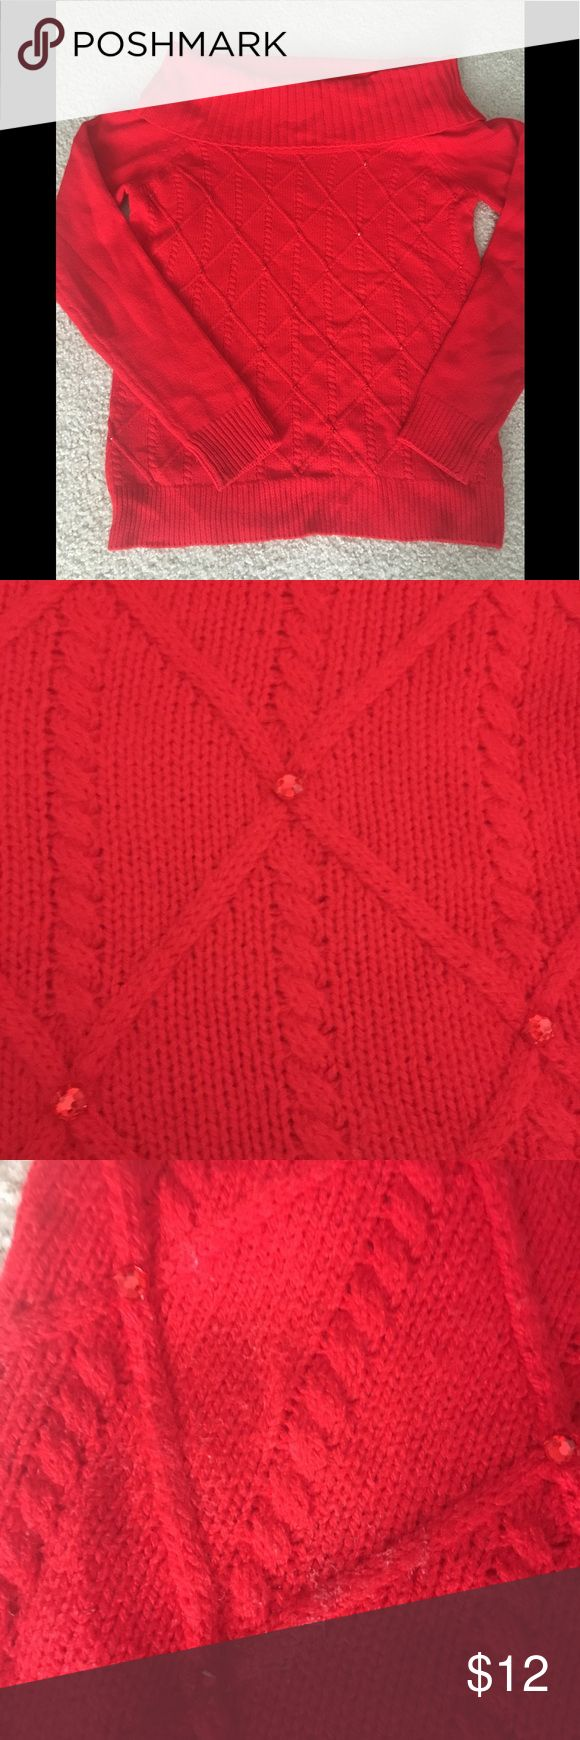 Red sweater with red rhinestones NY&CO red cowl neck sweater with rhinestones. Gently worn. Slight discoloration on the front, small pull on the sleeve. New York & Company Sweaters Cowl & Turtlenecks